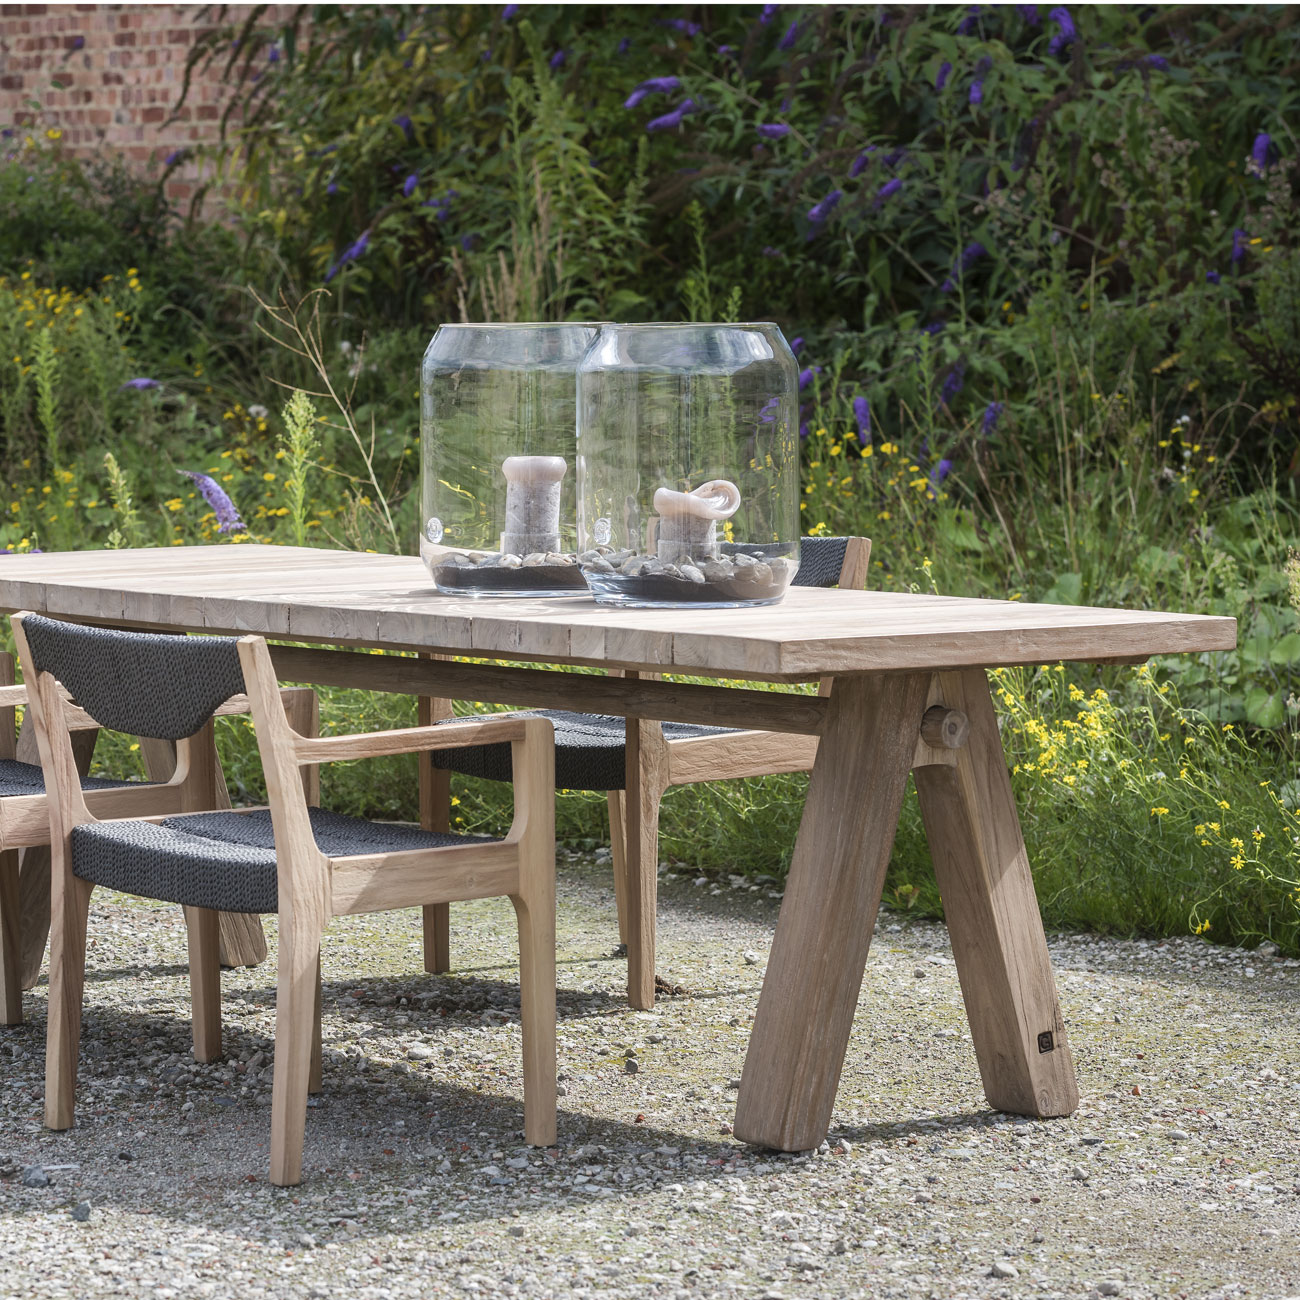 Gommaire Ziggy Dining Table Luxury Outdoor Living